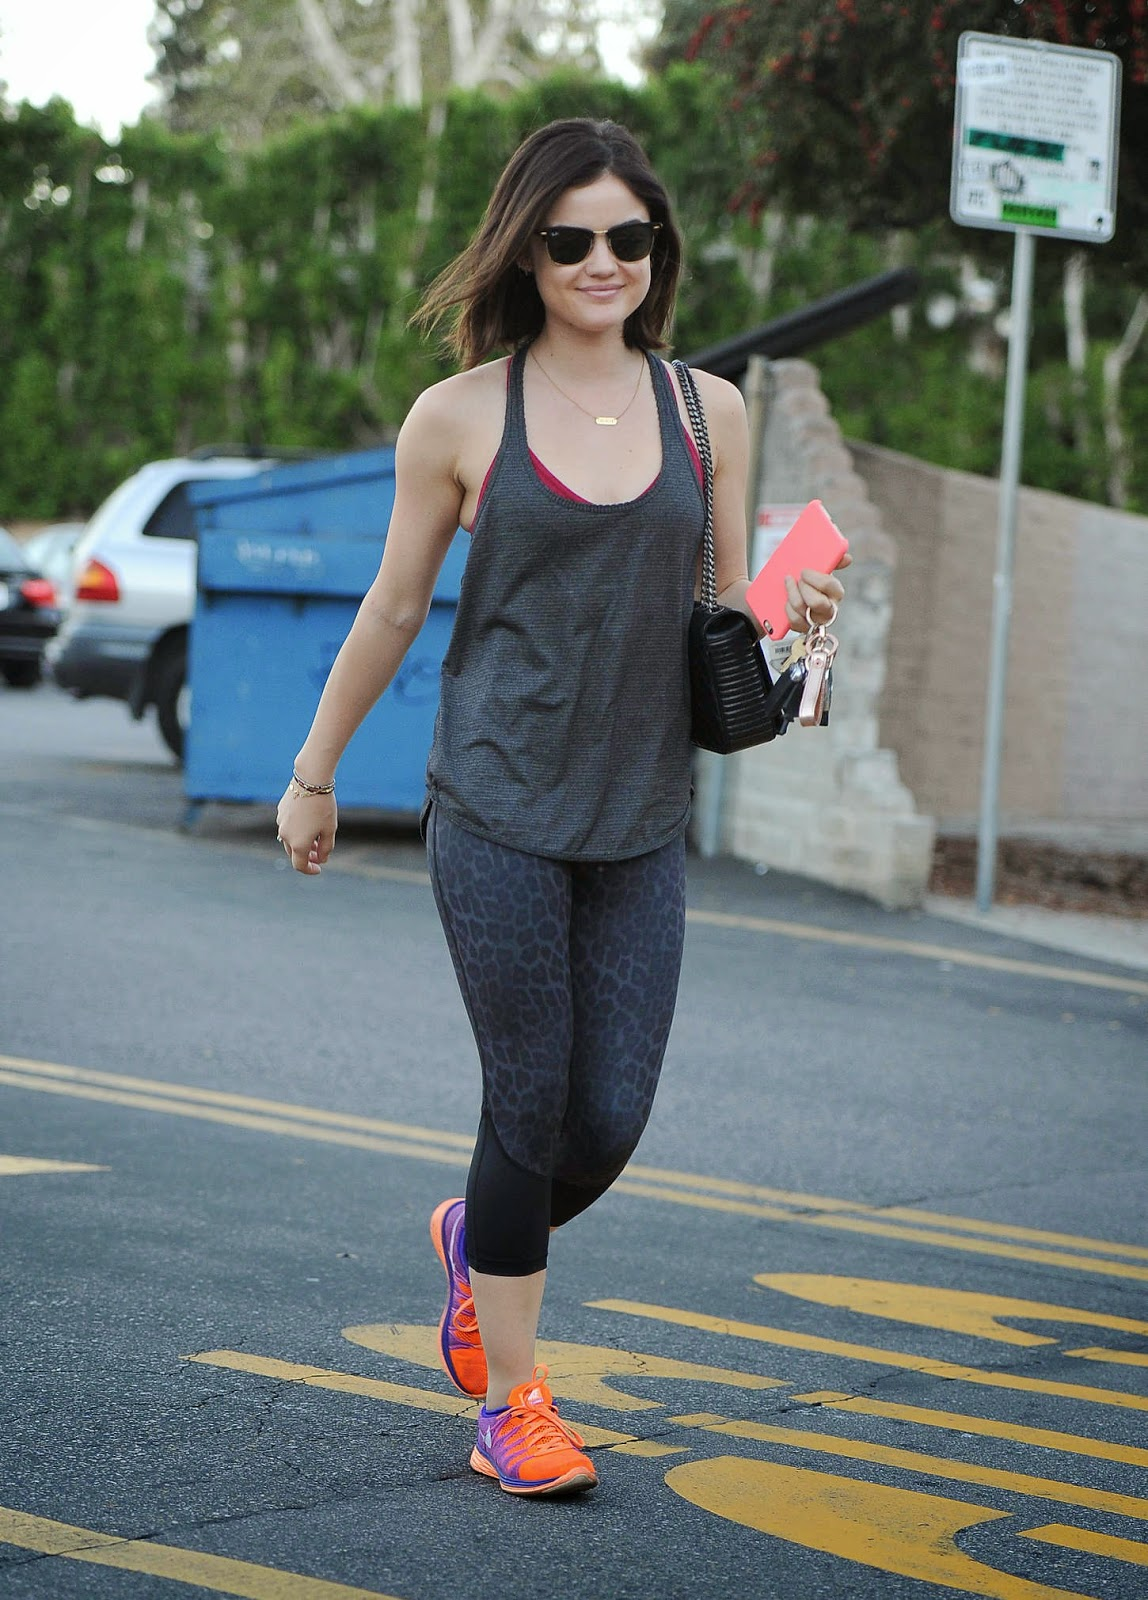 Lucy Hale spotted in gym wear out and about in LA